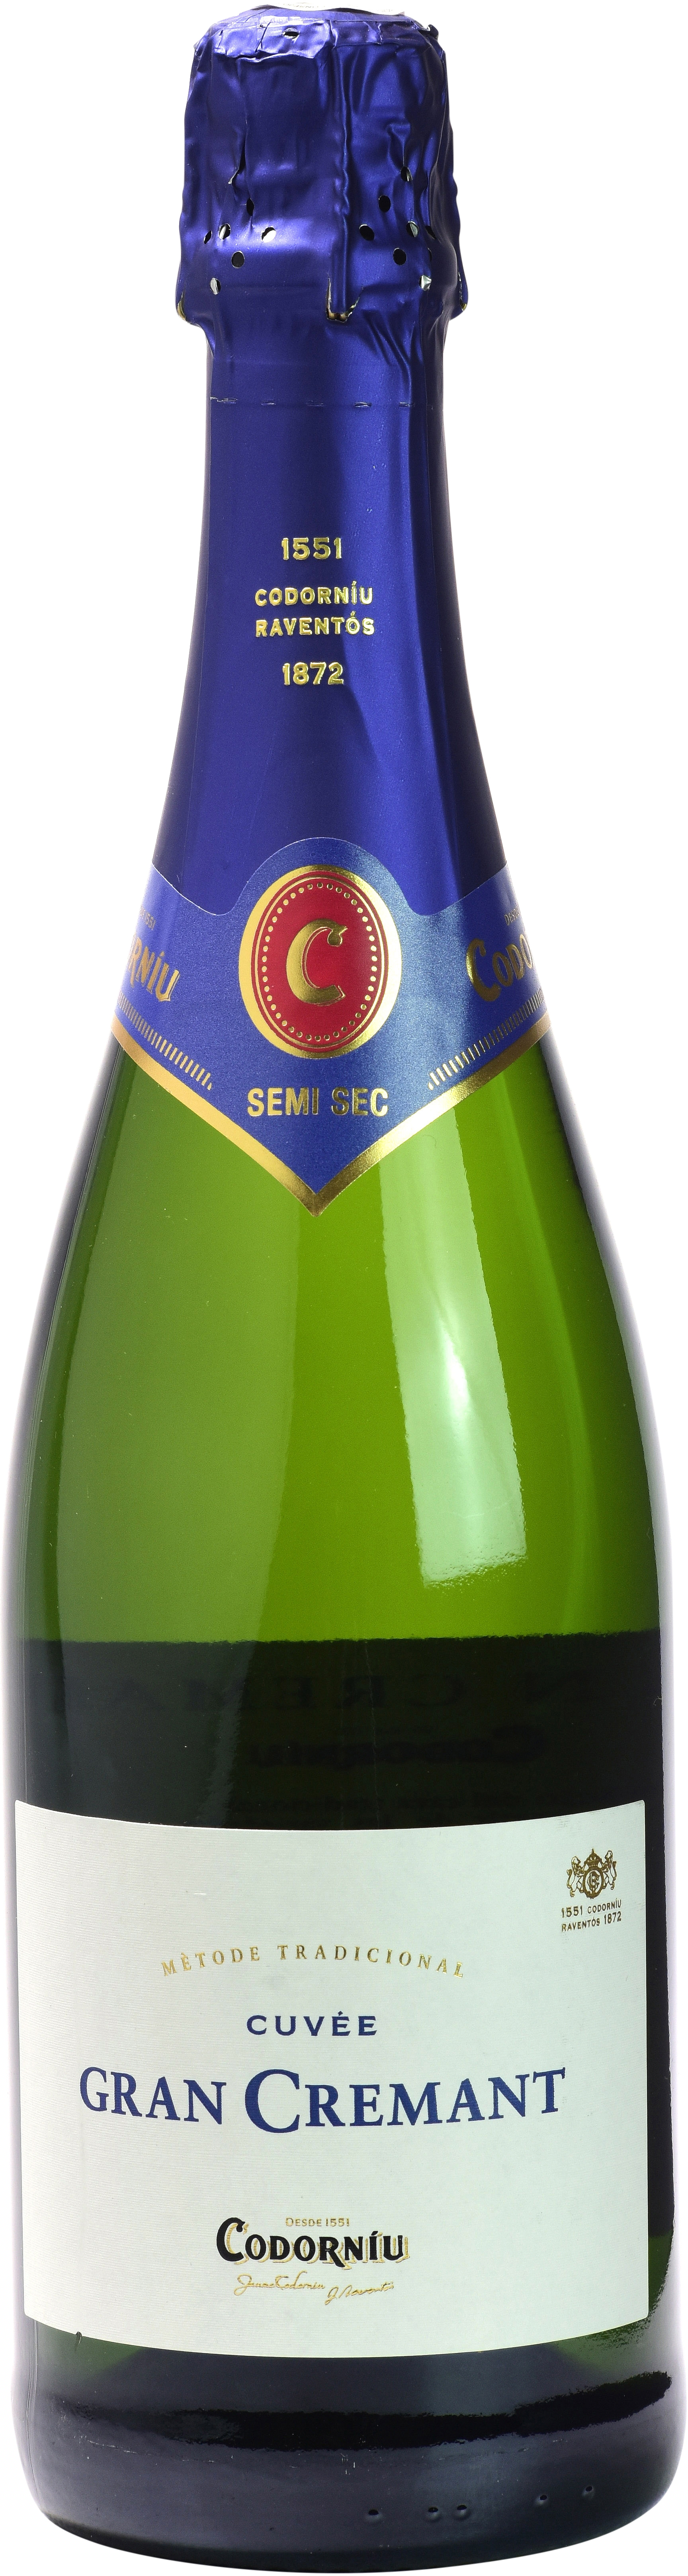 GRAND CREMANT, SEMISECO